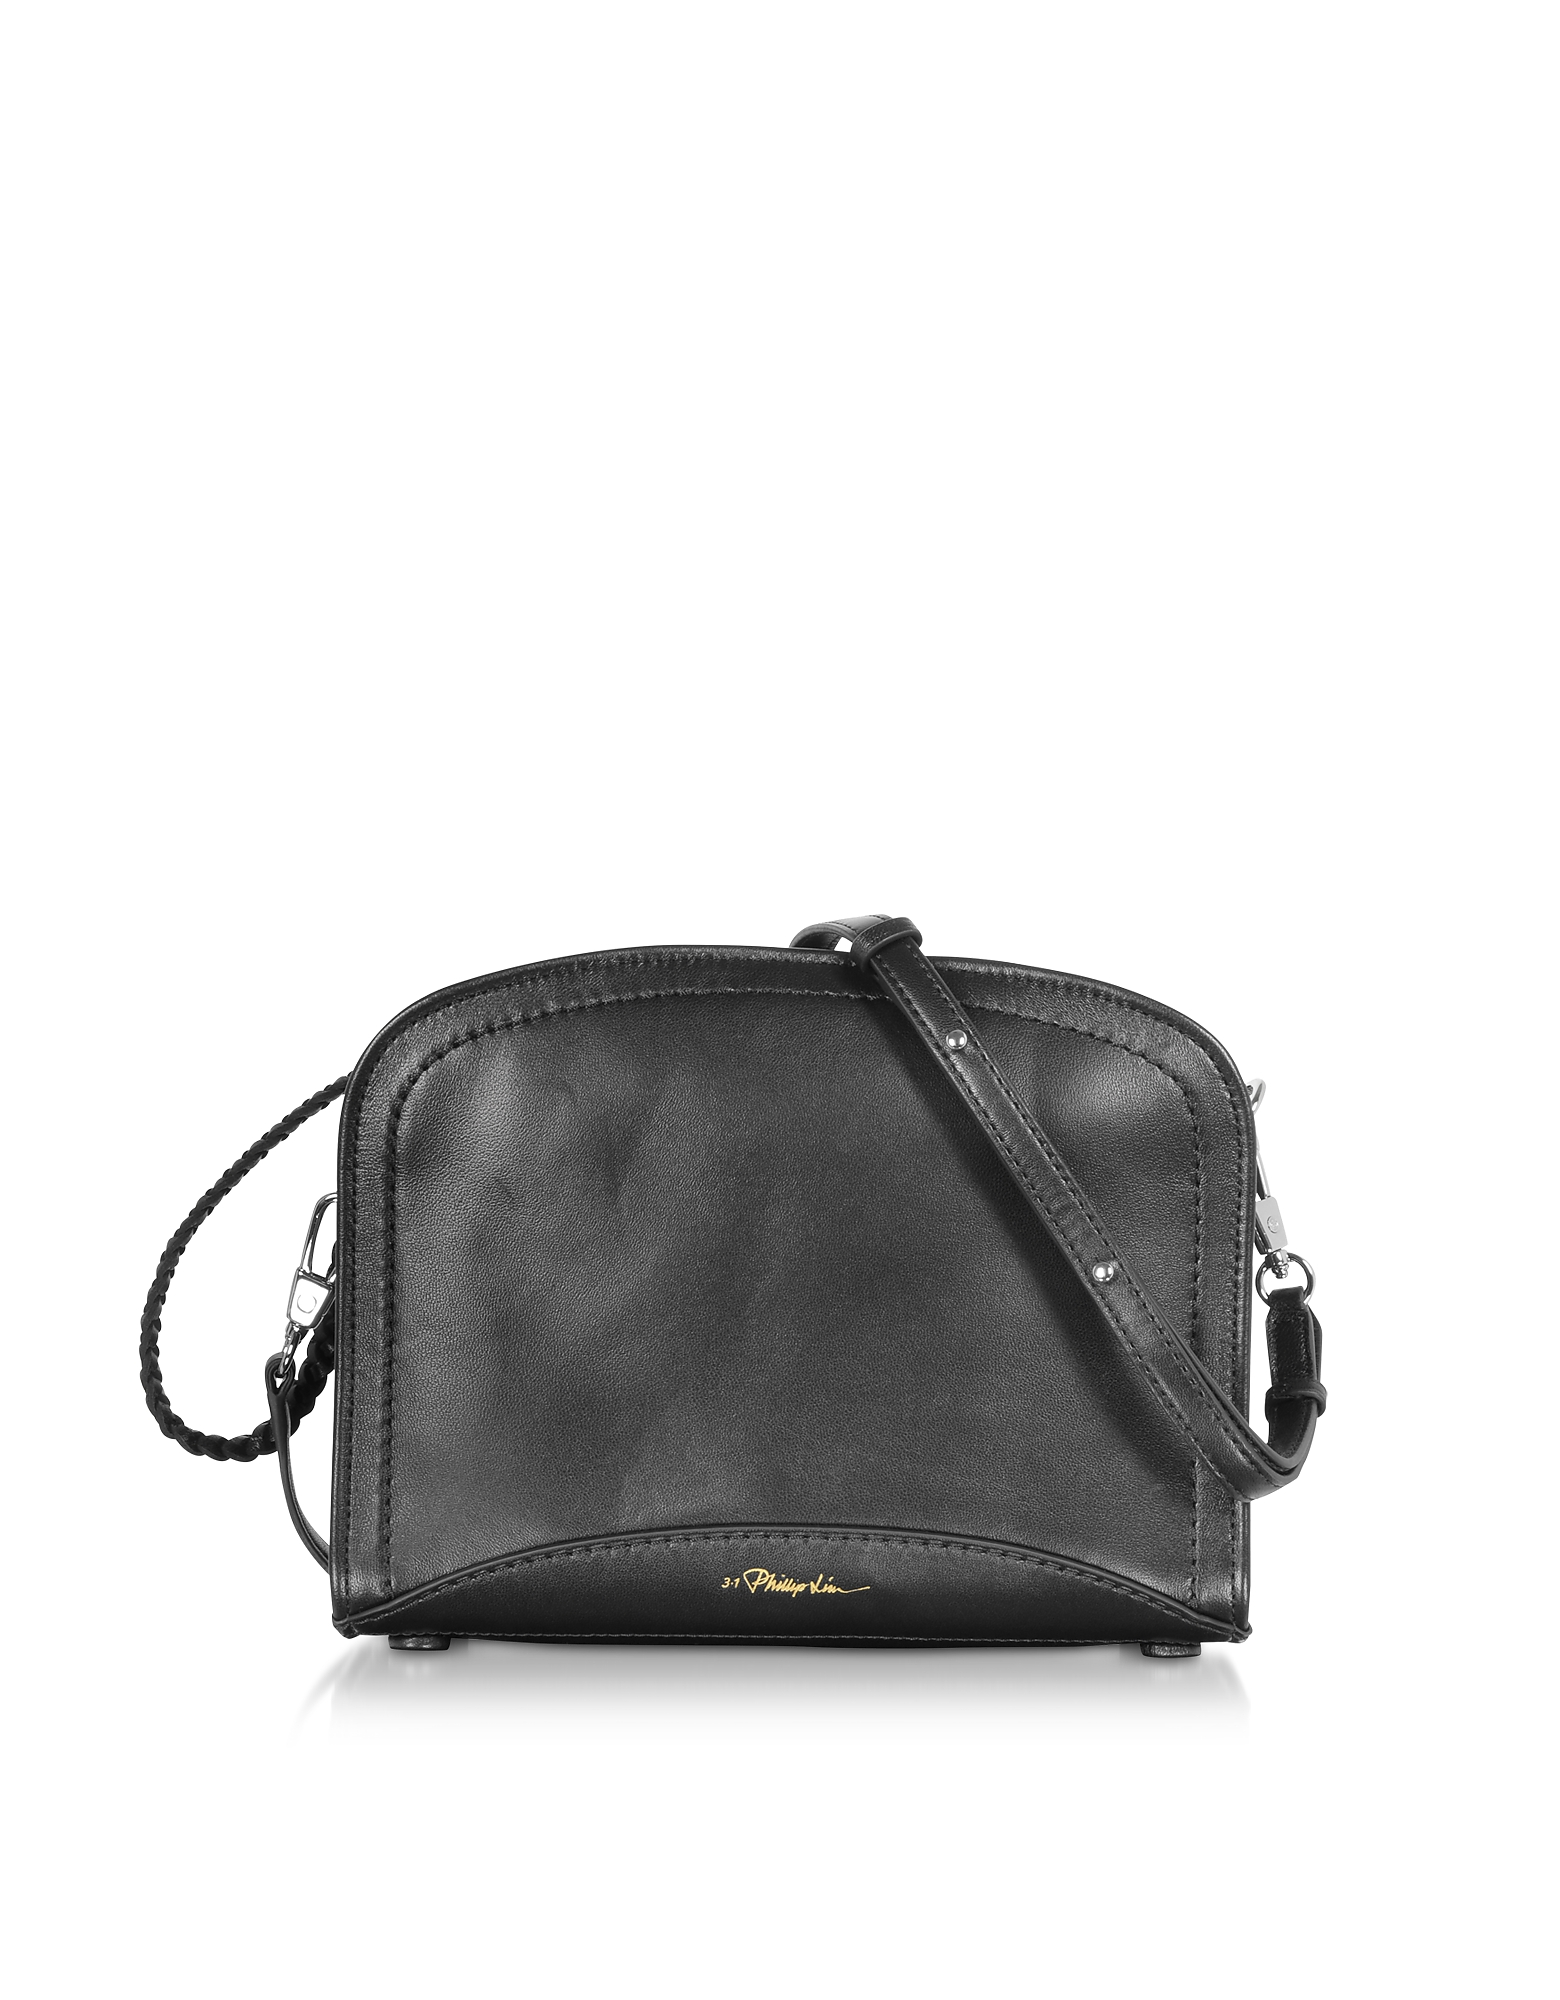 Hudson Small Rectangle Crossbody Bag